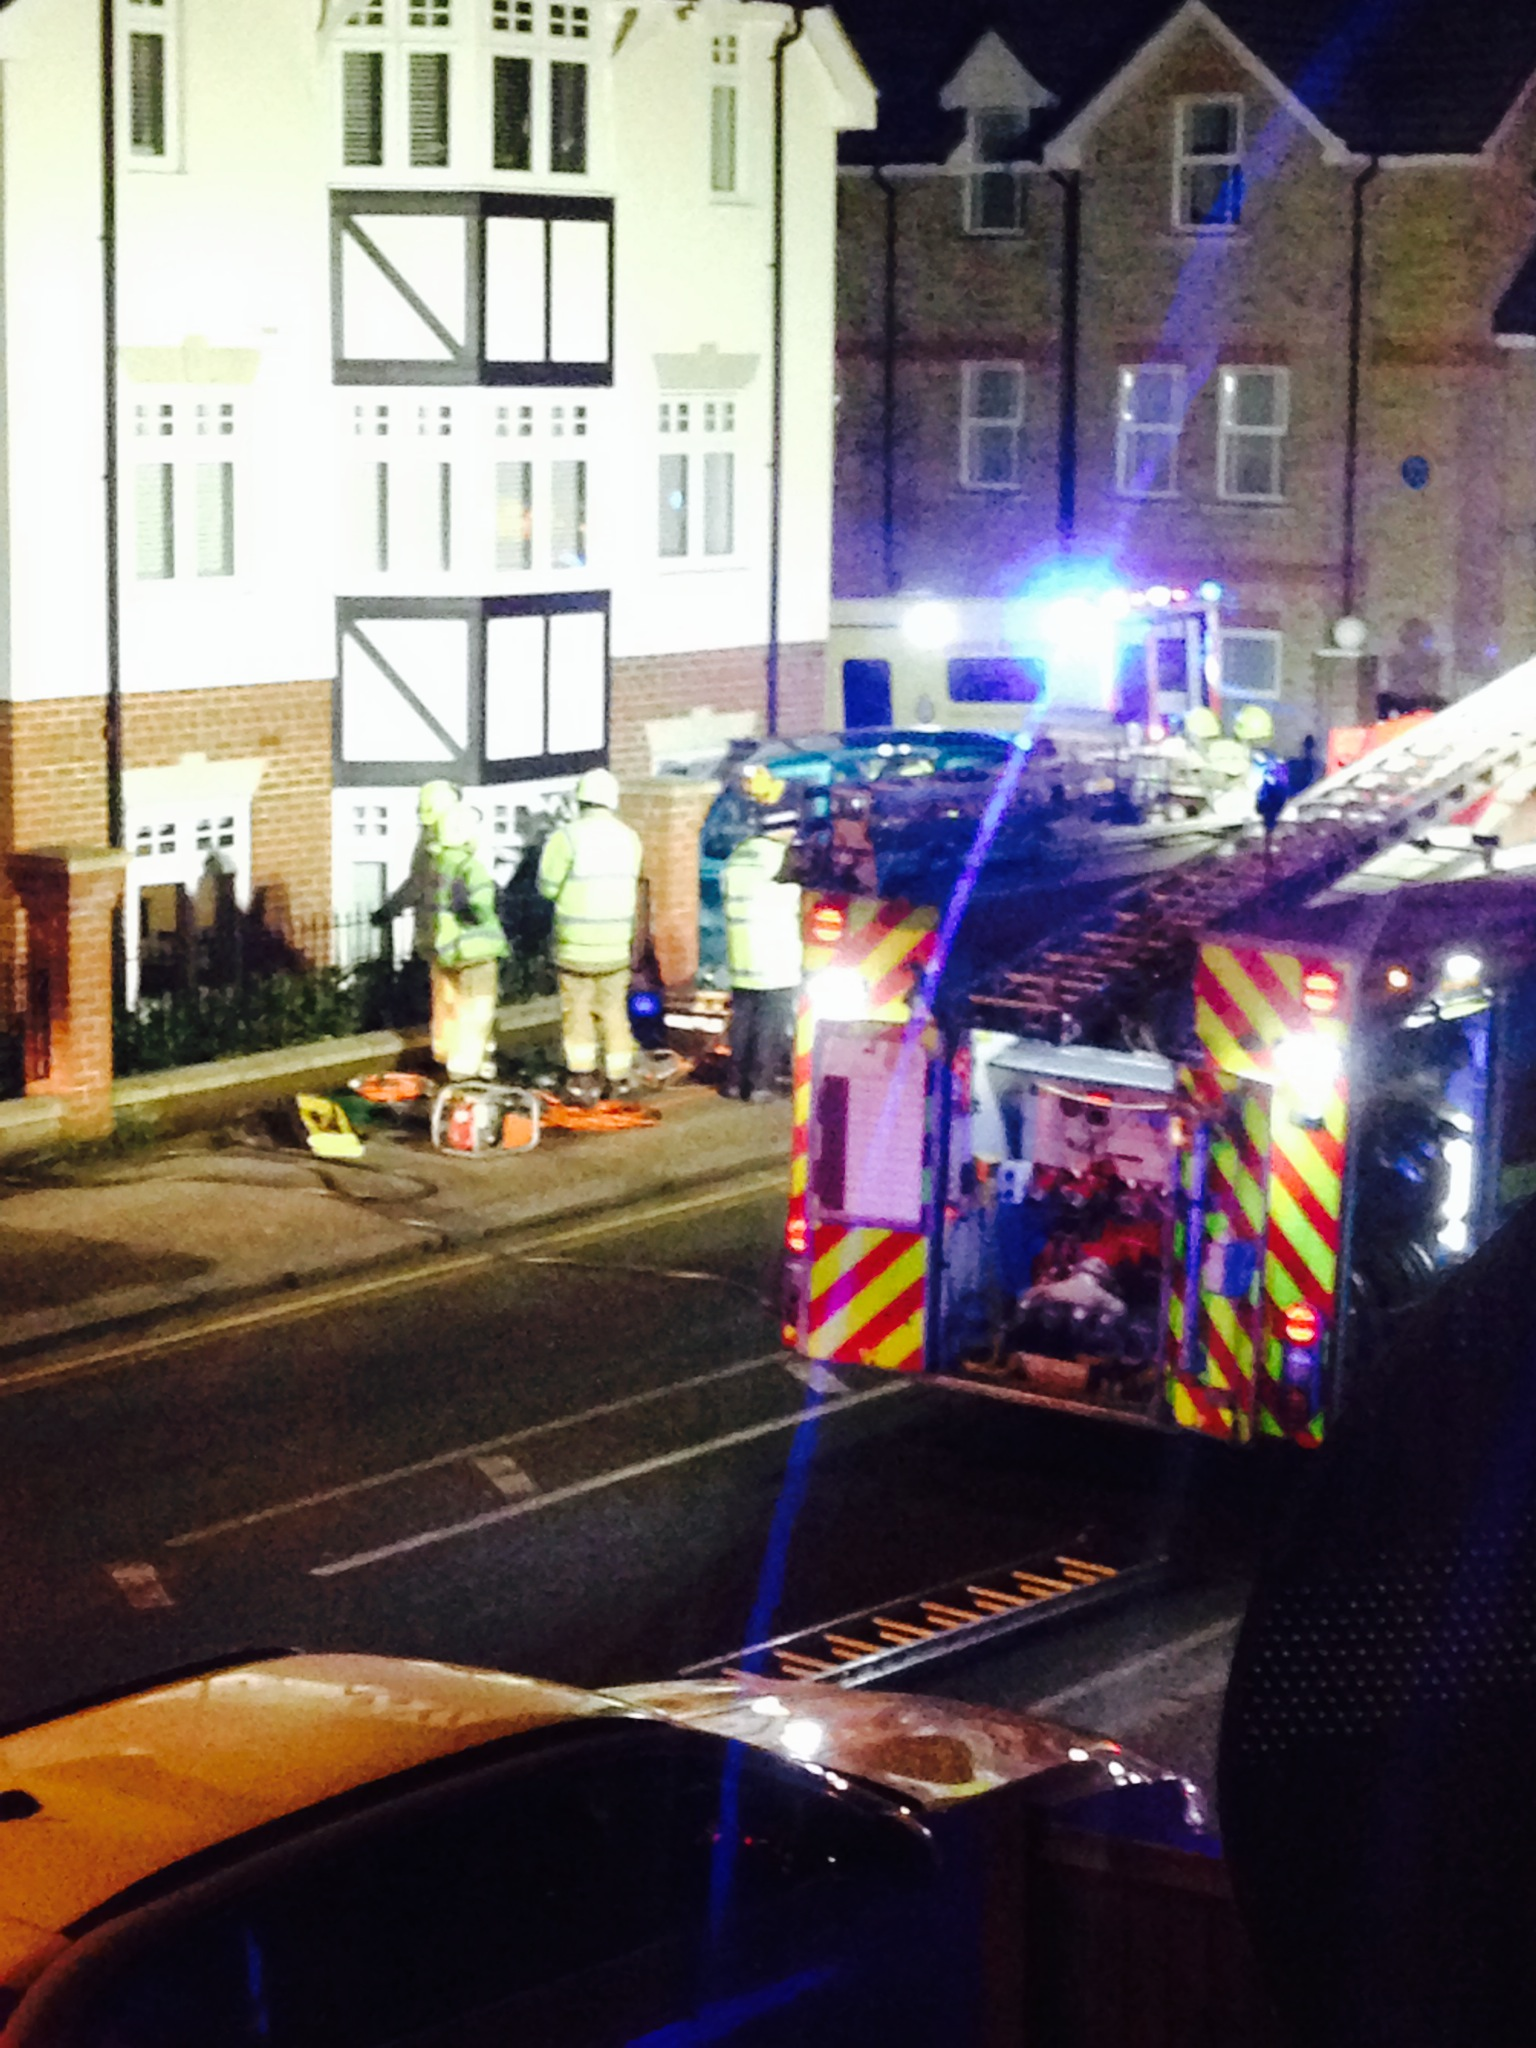 Firefighters at the Loughton junction last night. Jane MacDonald photo.